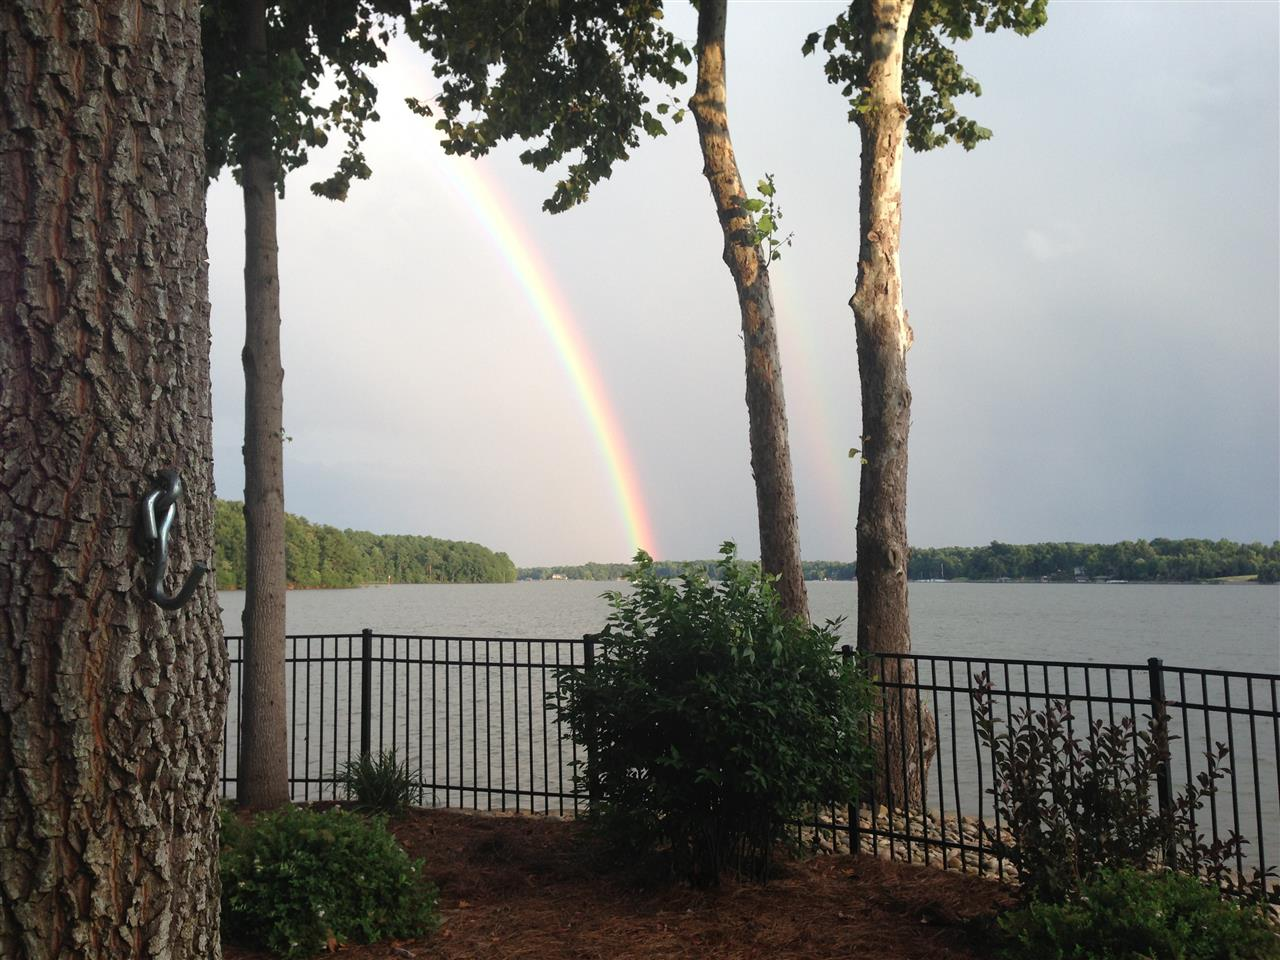 Now where did I leave that pot of gold! Lake Norman, NC